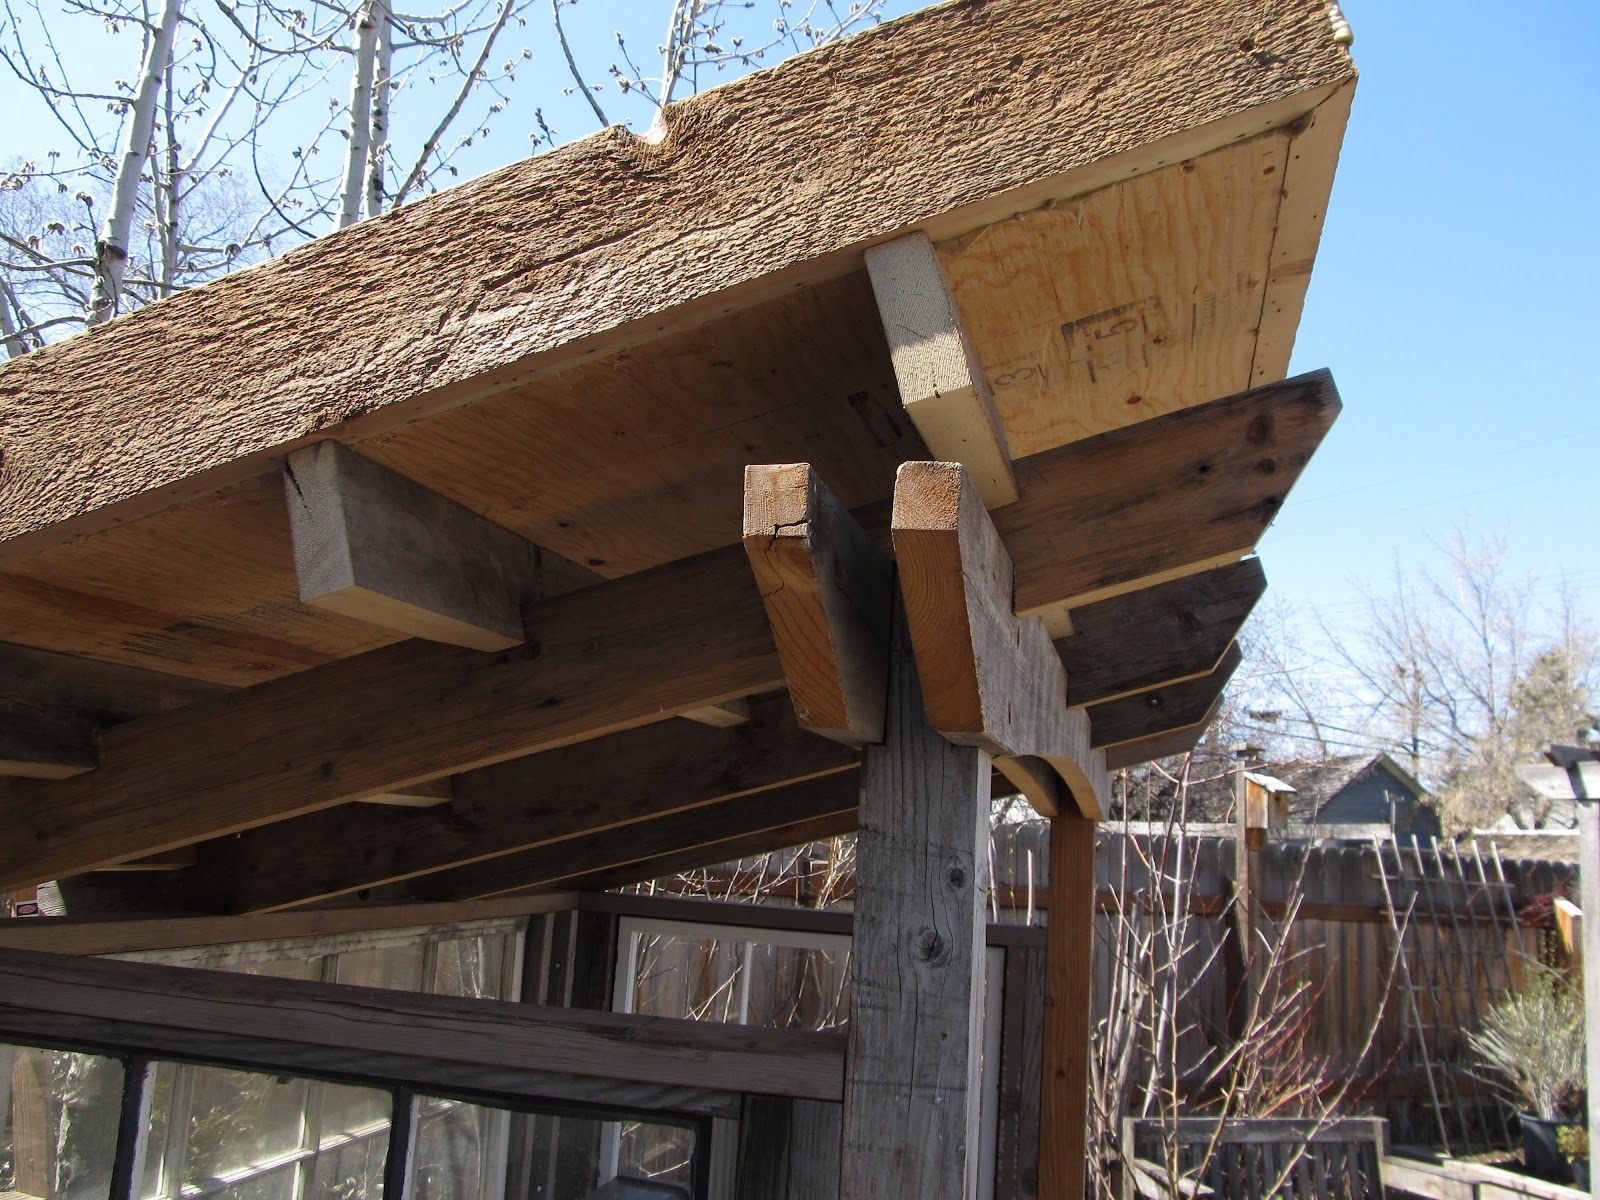 Montana Wildlife Gardener Green Roof For The Grill Shed